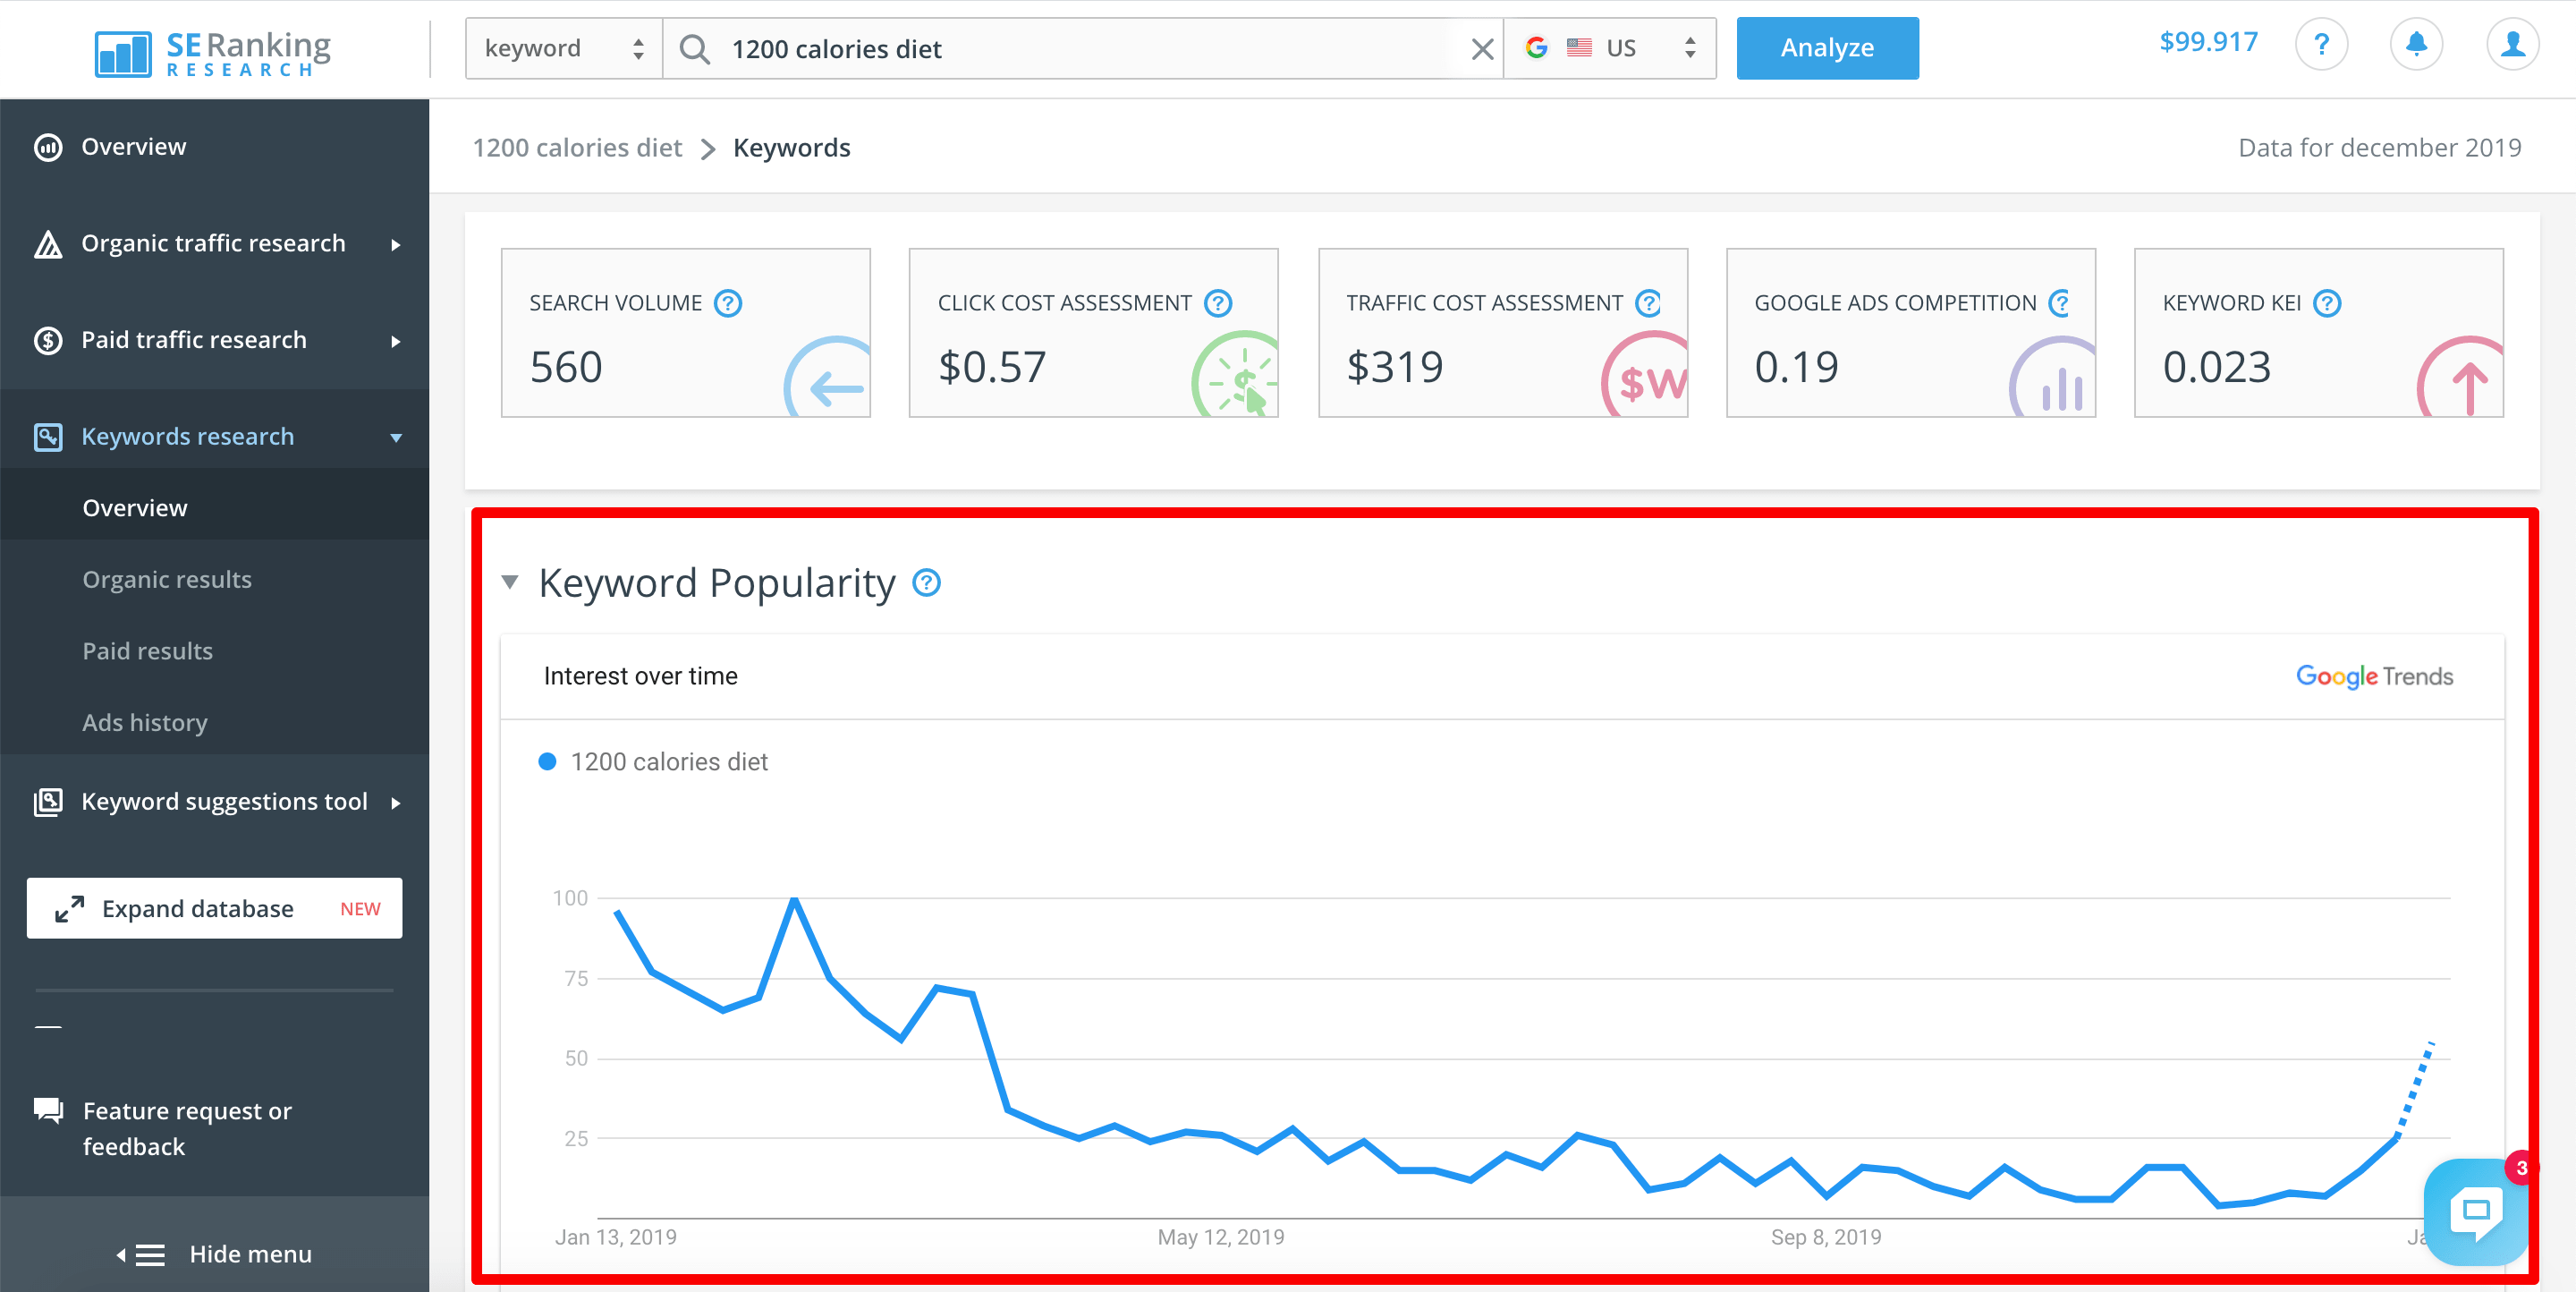 Keyword popularity graph in SE Ranking